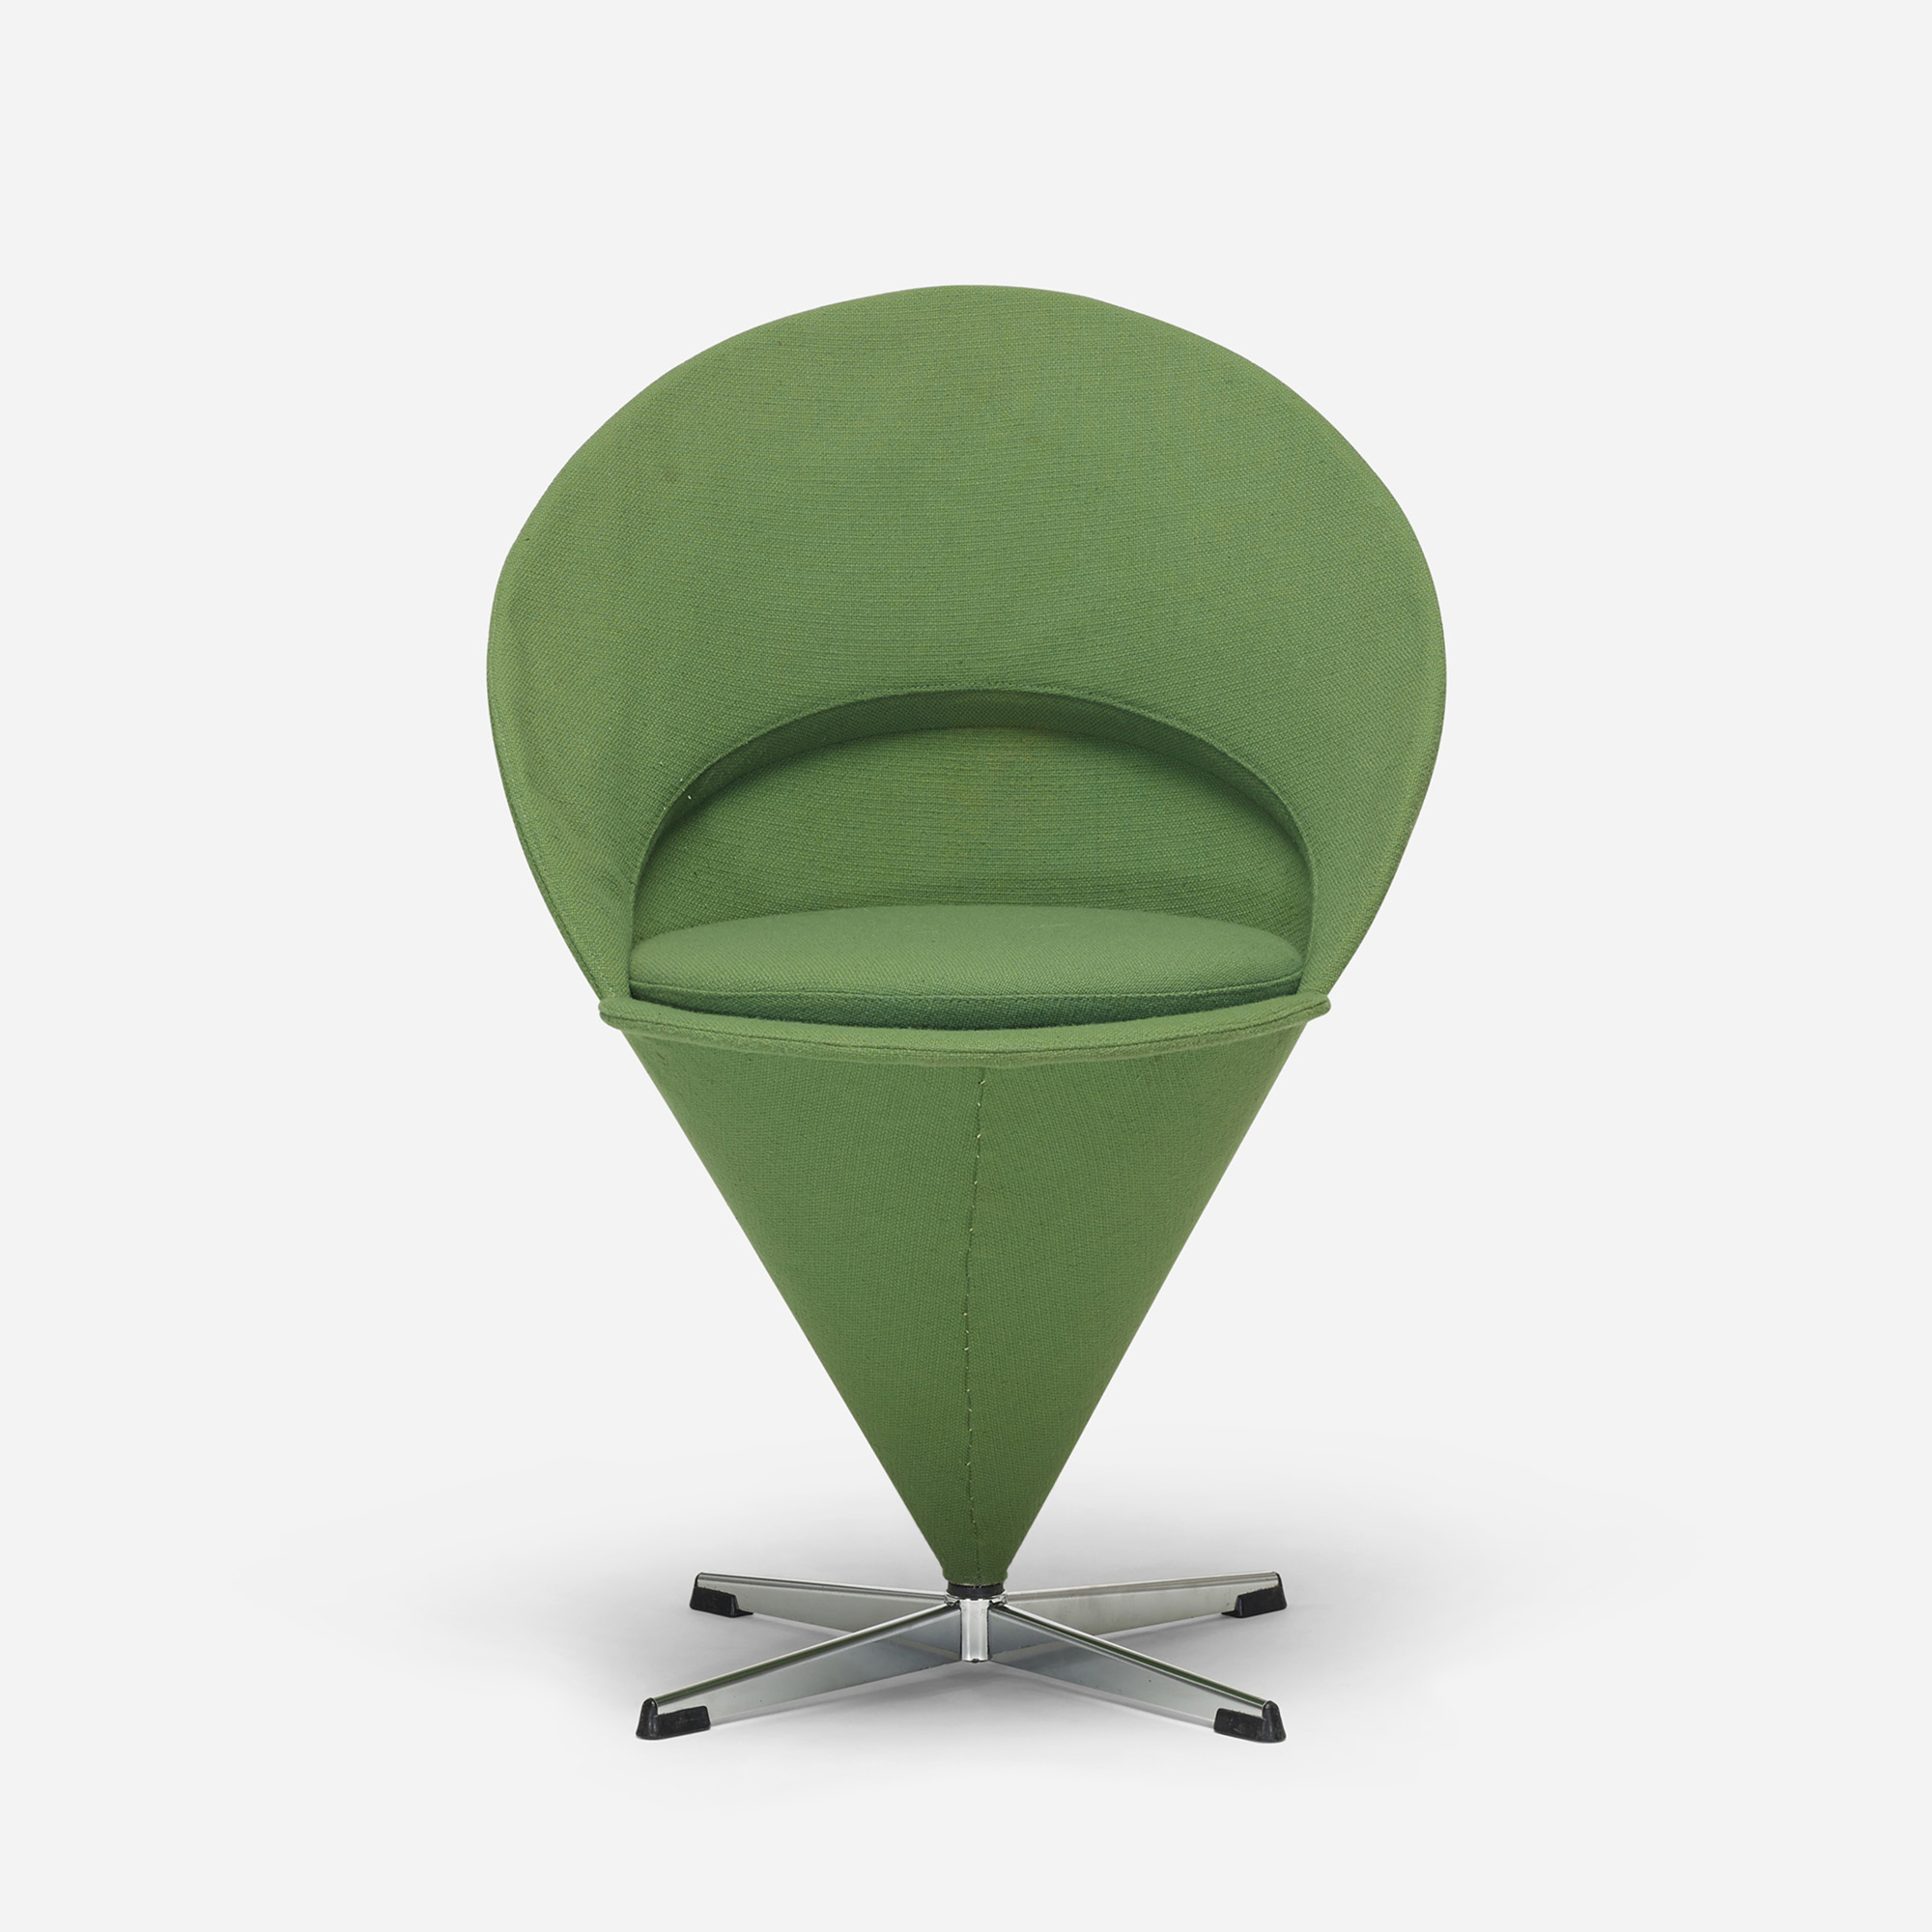 649: Verner Panton / Cone chair (1 of 4)